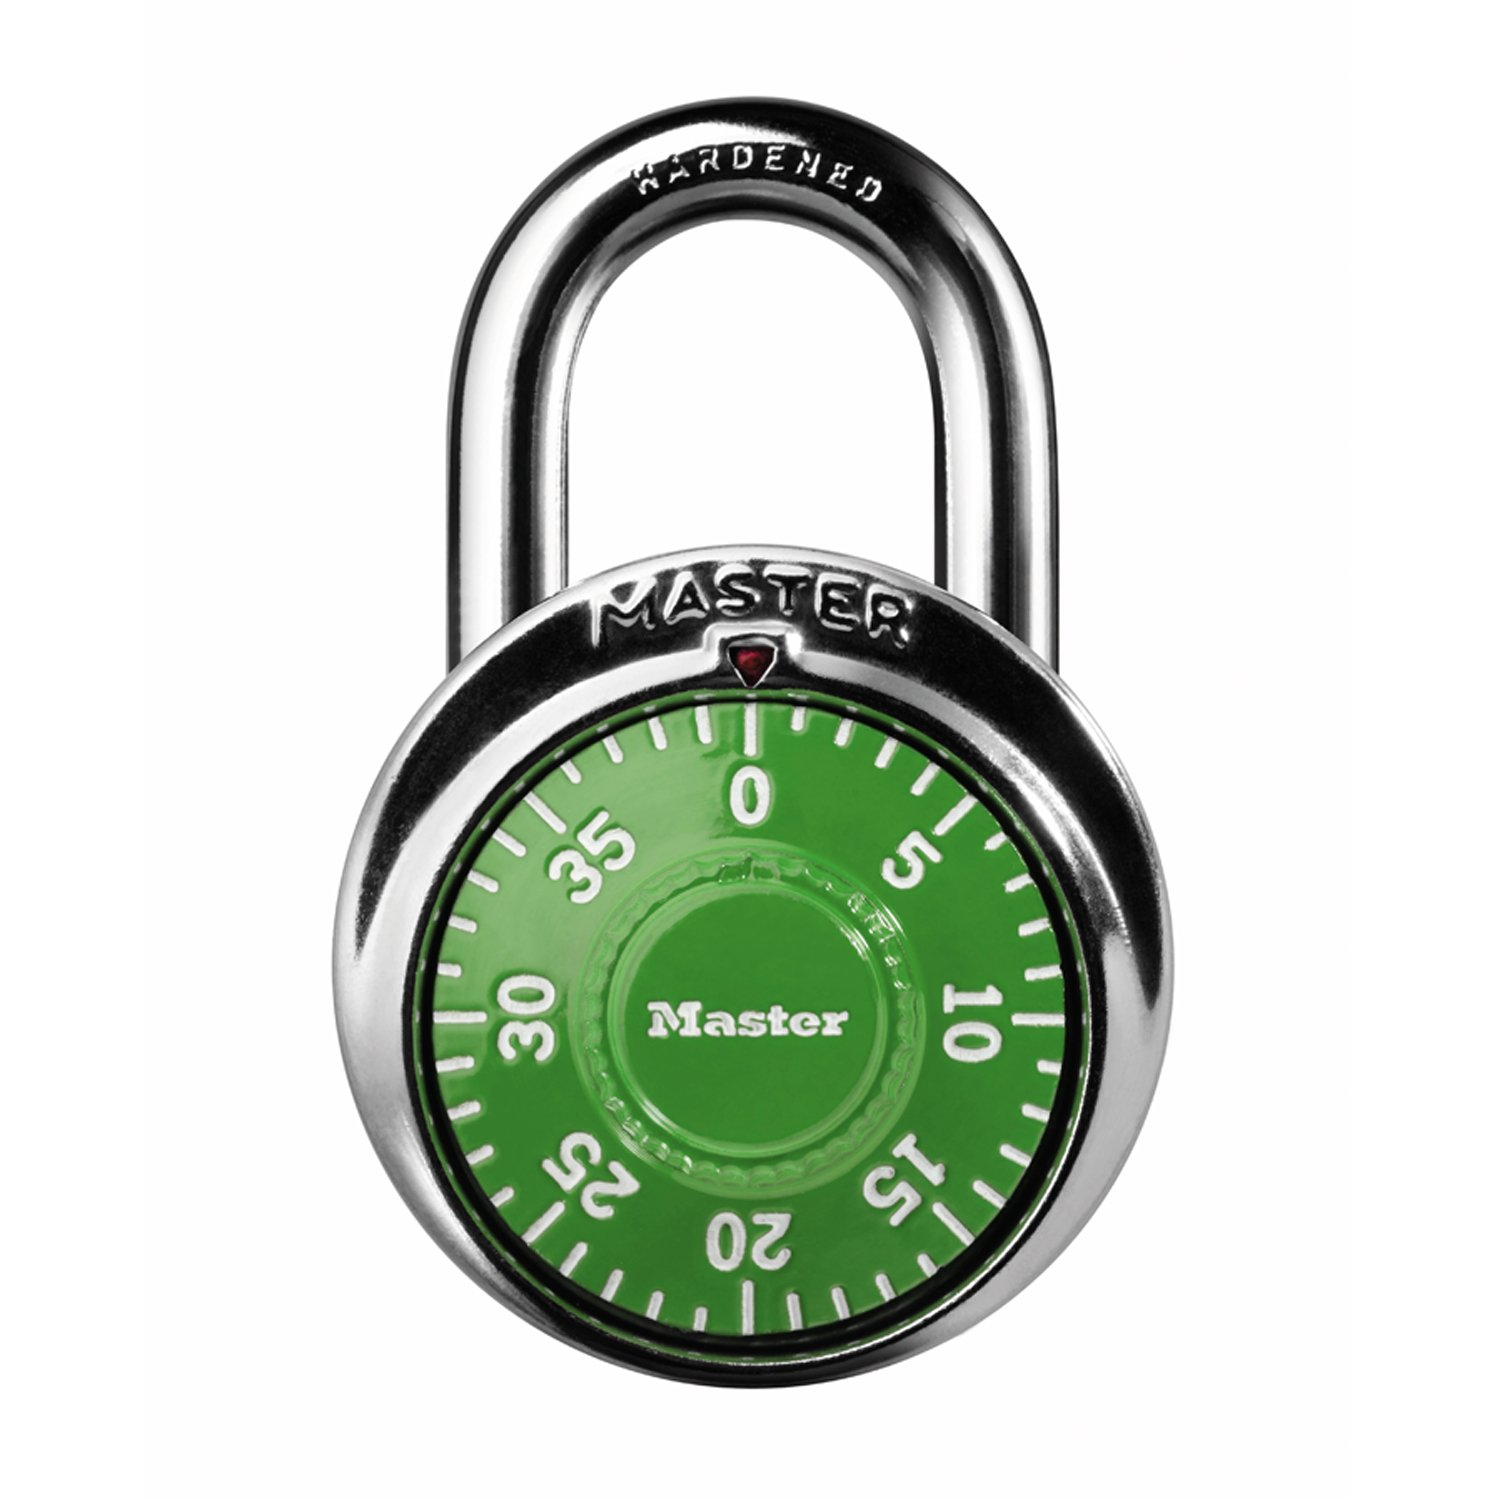 Master Lock 1505D Dial Combination Padlock 1 7 8 in. Wide with 3 4 in. Long Shackle Assorted